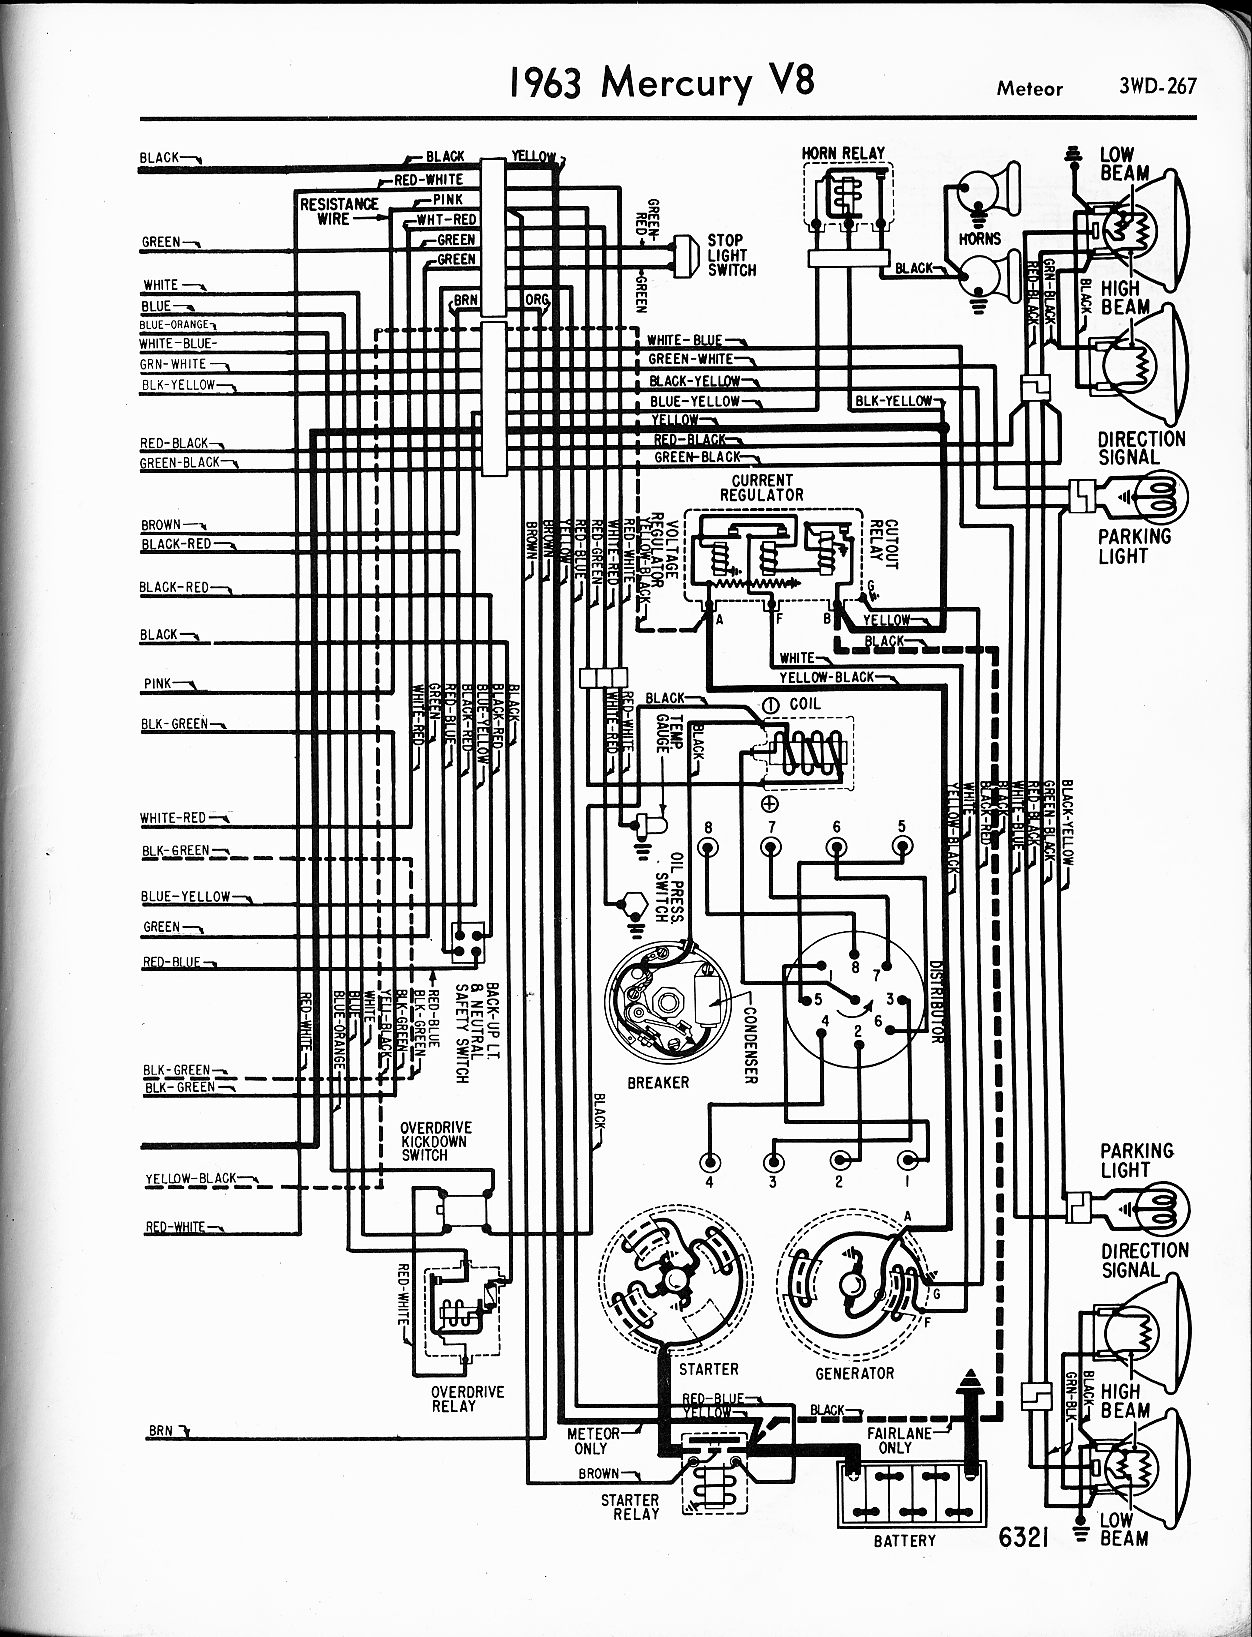 hight resolution of 1953 cadillac turn signal diagram wiring schematic wiring diagrams 03 trailblazer fuse box diagram 69 mustang turn signal wiring diagram